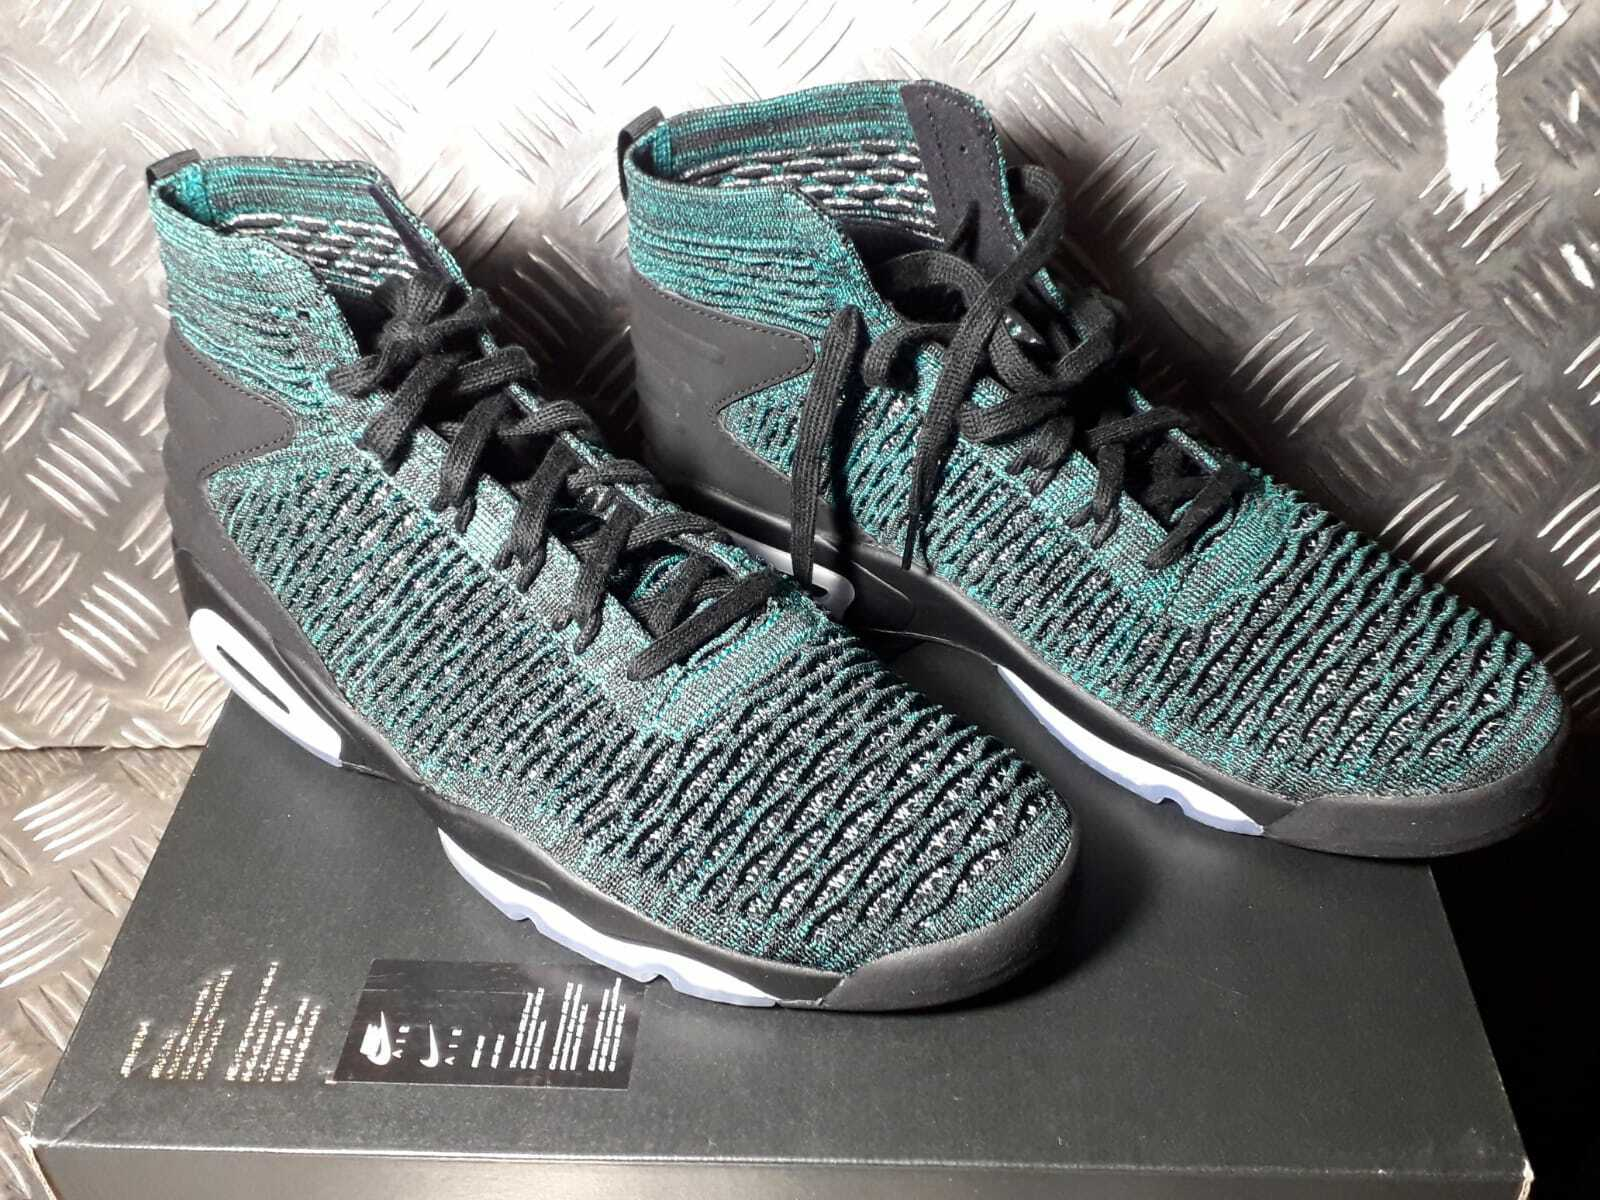 Nike Jordan Flyknit Elevation 23 Turnschuhe Eur 46 UK 11 US 12 gruen AJ8207 300